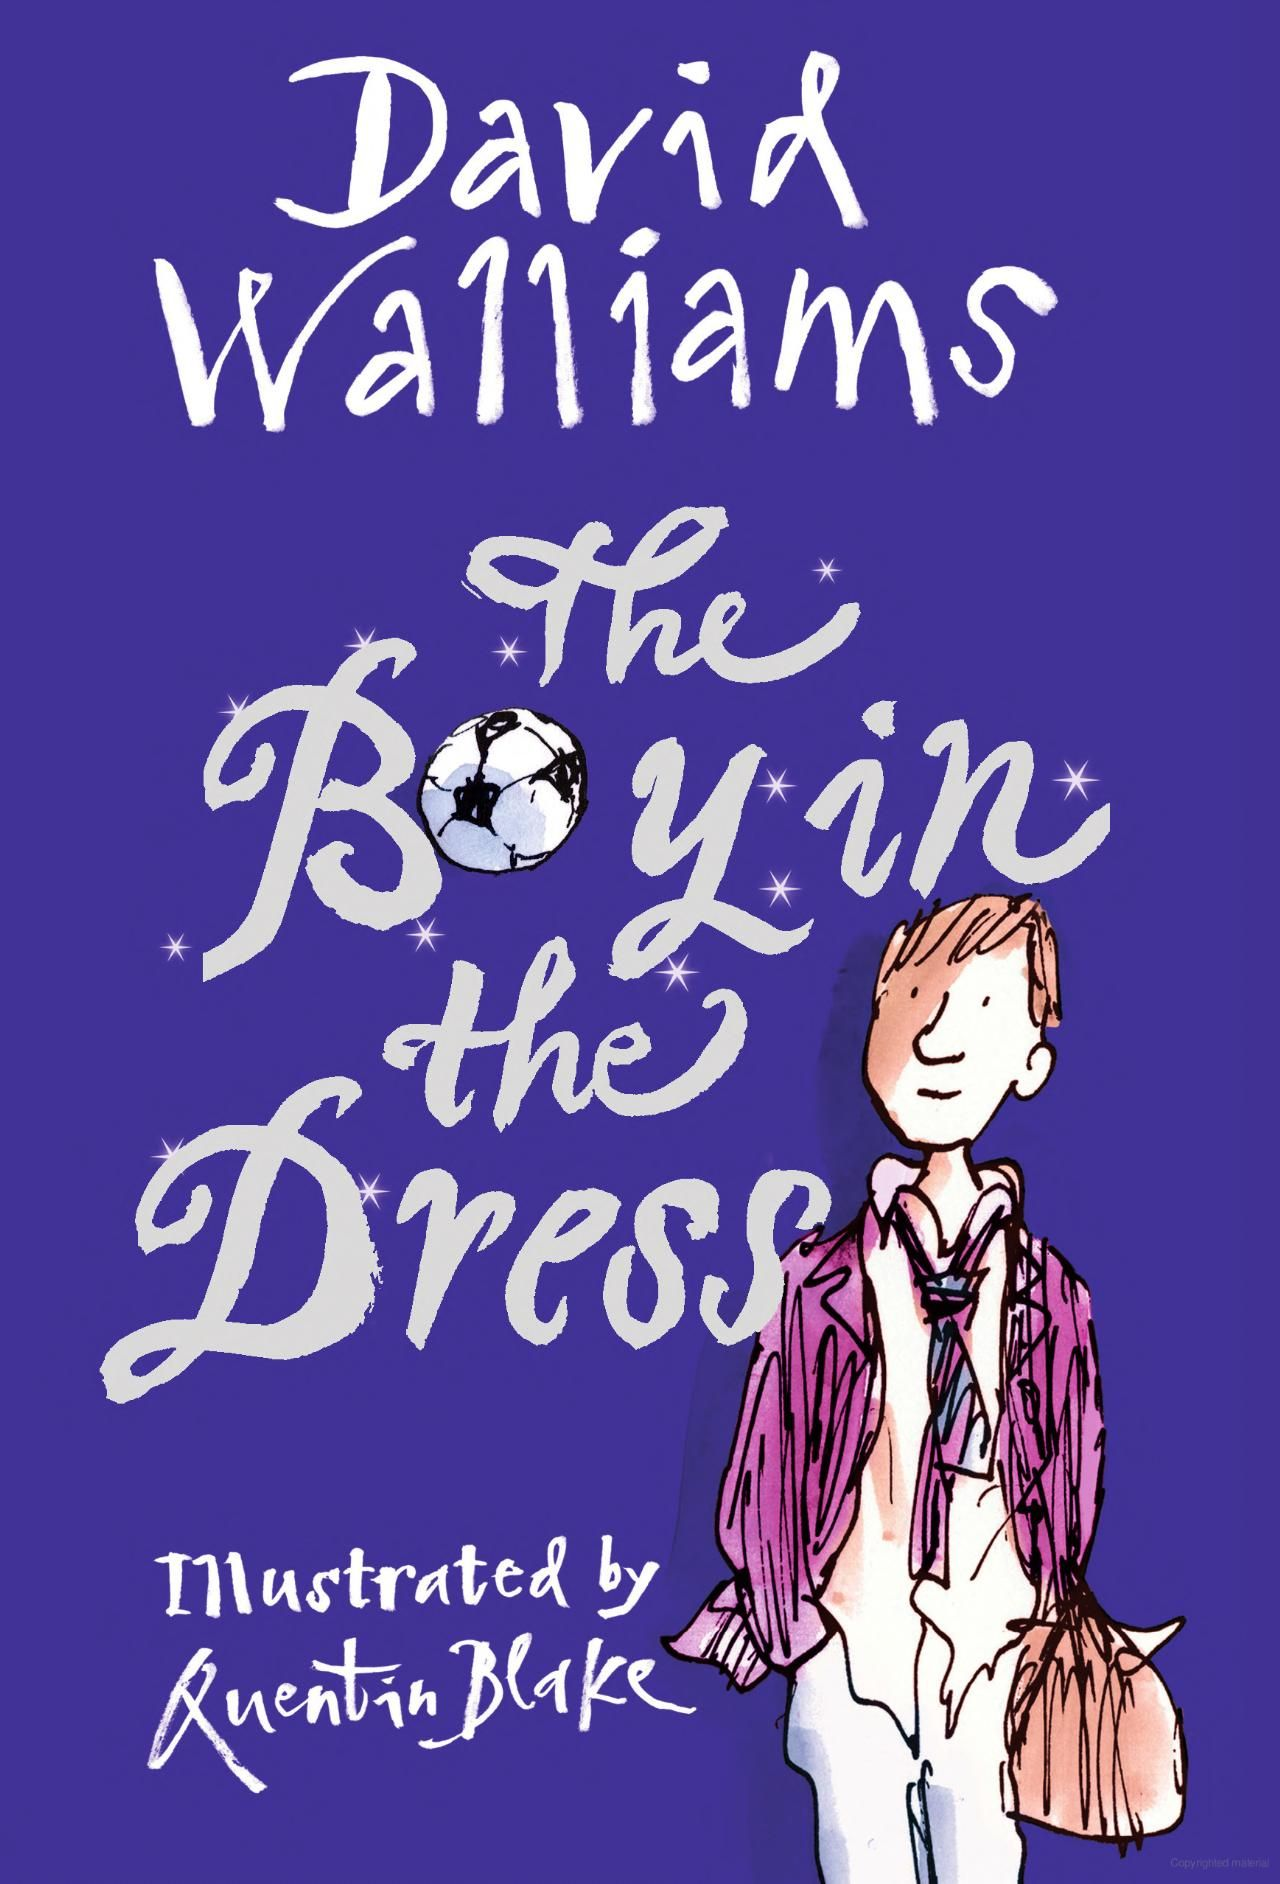 Reviews children s book review demon dentist david walliams - The Boy In The Dress By David Walliams Soccer Aka Football Gender Expression Through Clothes Lots Of Humor